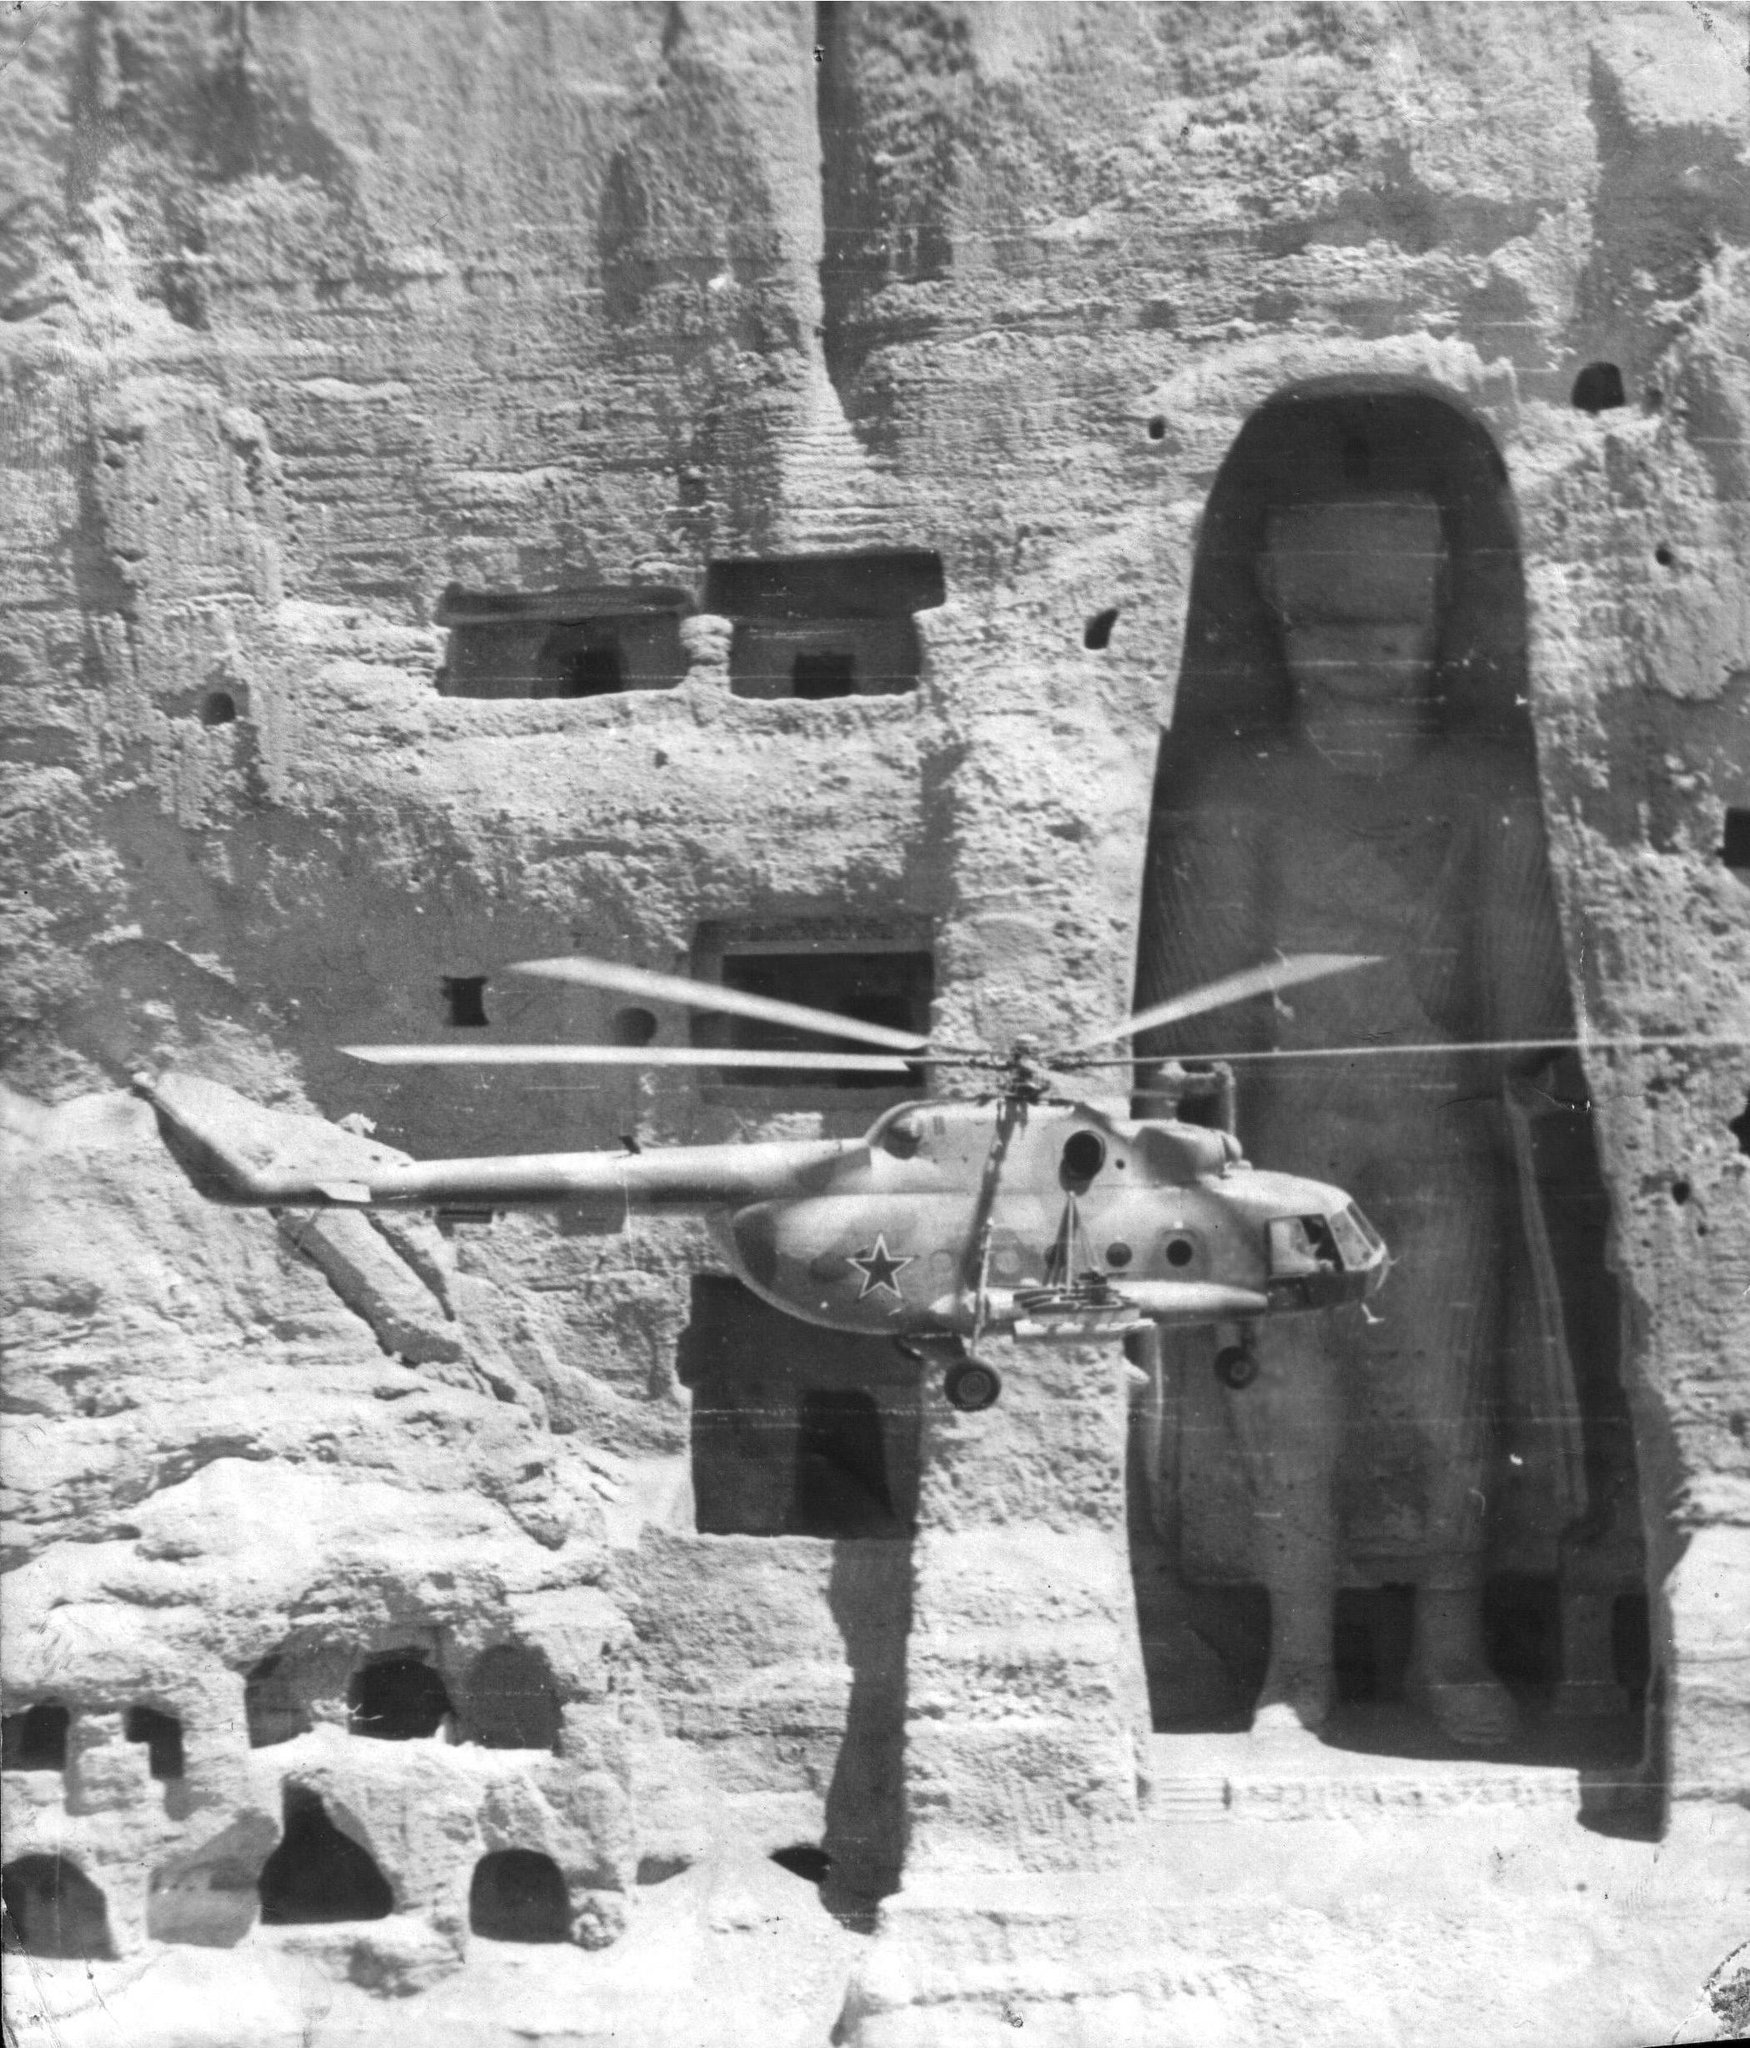 avions et hélicoptères soviétique Soviet-helicopter-flying-past-one-of-the-buddhas-of-bamiyan-during-soviet-war-in-afghanistan-jpg